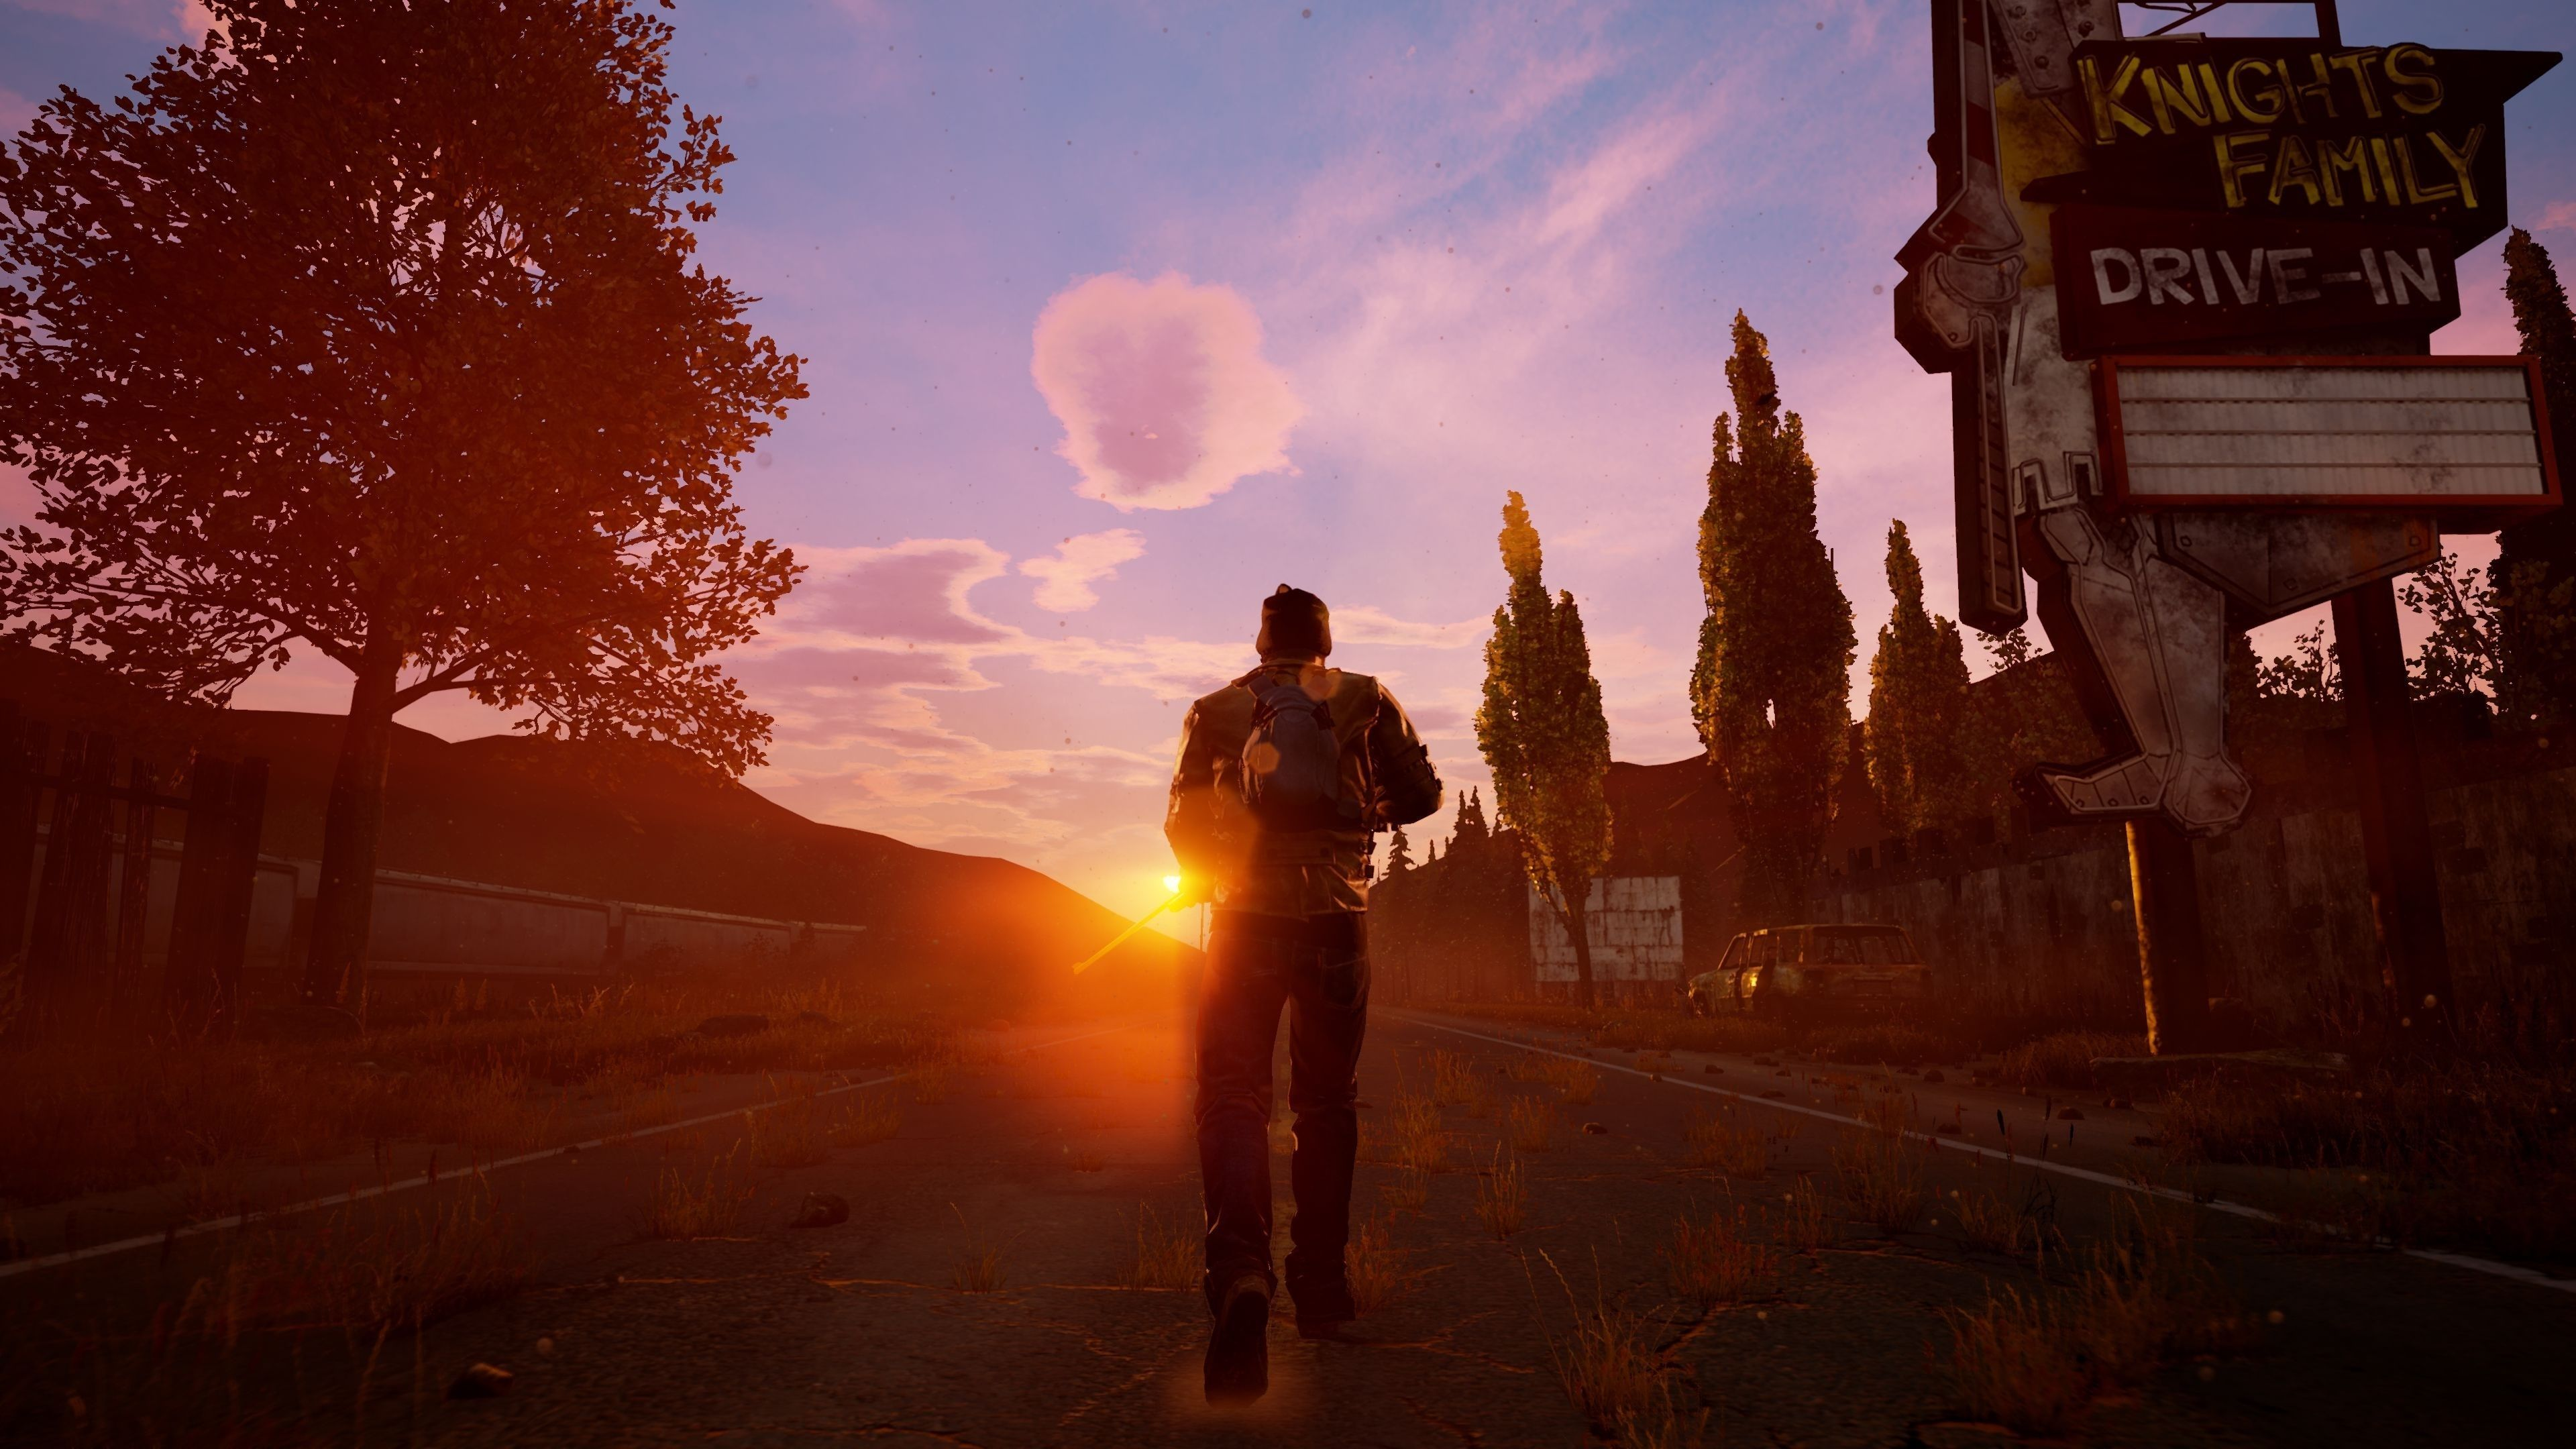 wp3276880 pubg 4k wallpapers - Player Unknown's Battlegrounds (PUBG) 4K Sunset - Pubg wallpaper phone, pubg wallpaper iphone, pubg wallpaper 1920x1080 hd, pubg hd wallpapers, pubg 4k wallpapers, pubg 4k sunset, Player Unknown's Battlegrounds 4k wallpapers